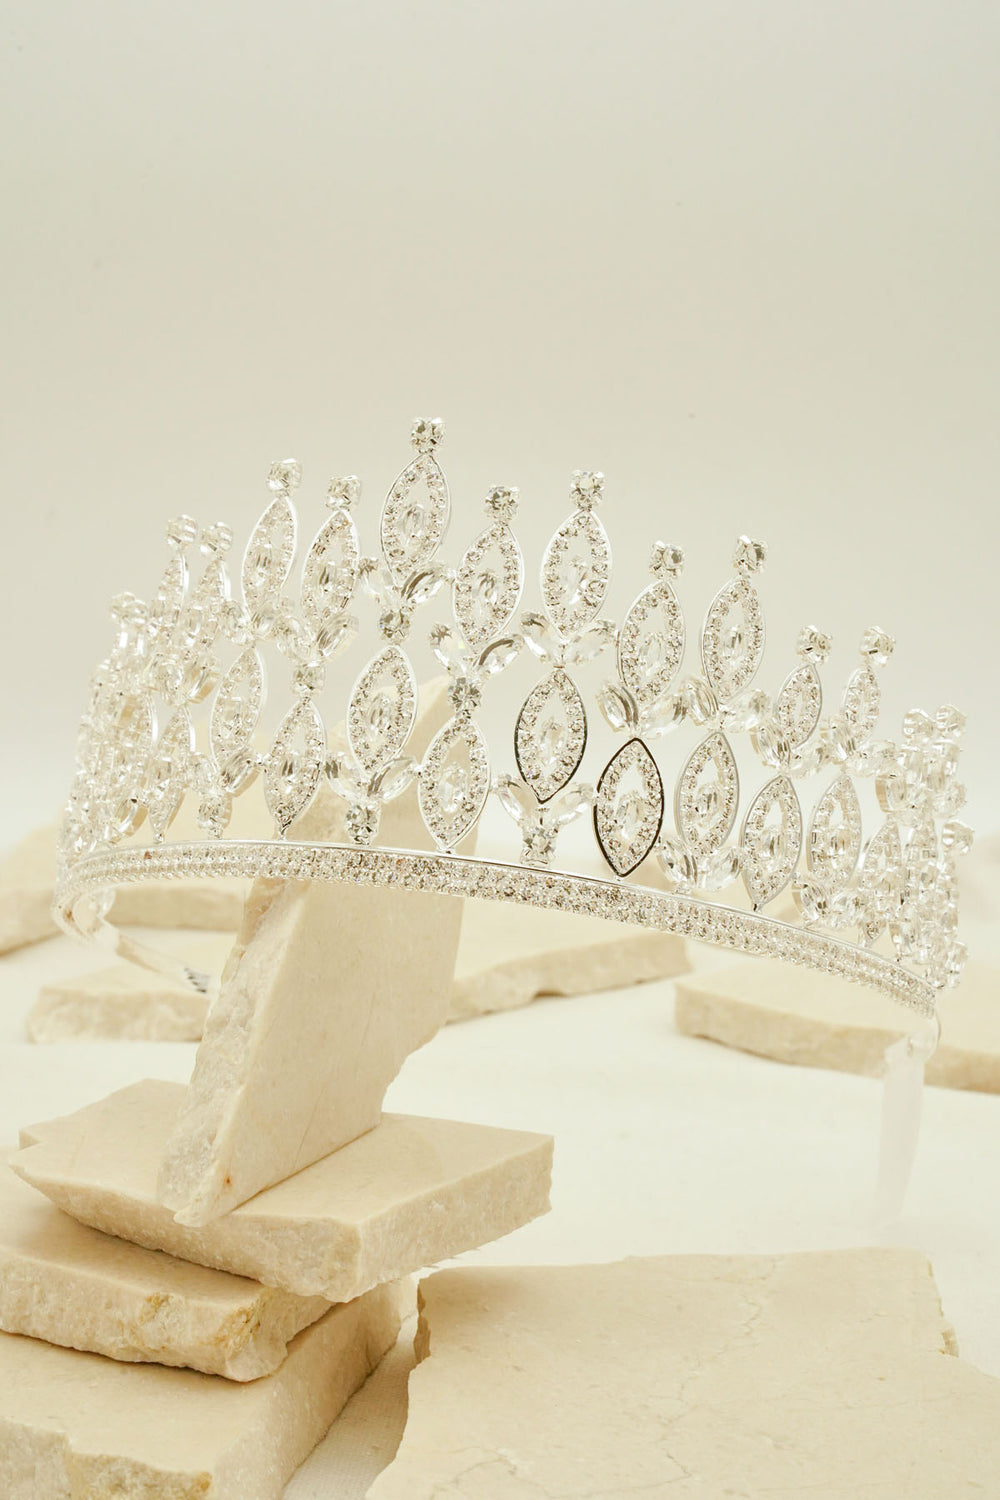 LEAVES ENCRUSTED WITH DIAMANTE AND ZIRCON TIARA FOR BRIDAL WEDDING AND PARTIES BY NARIANNA